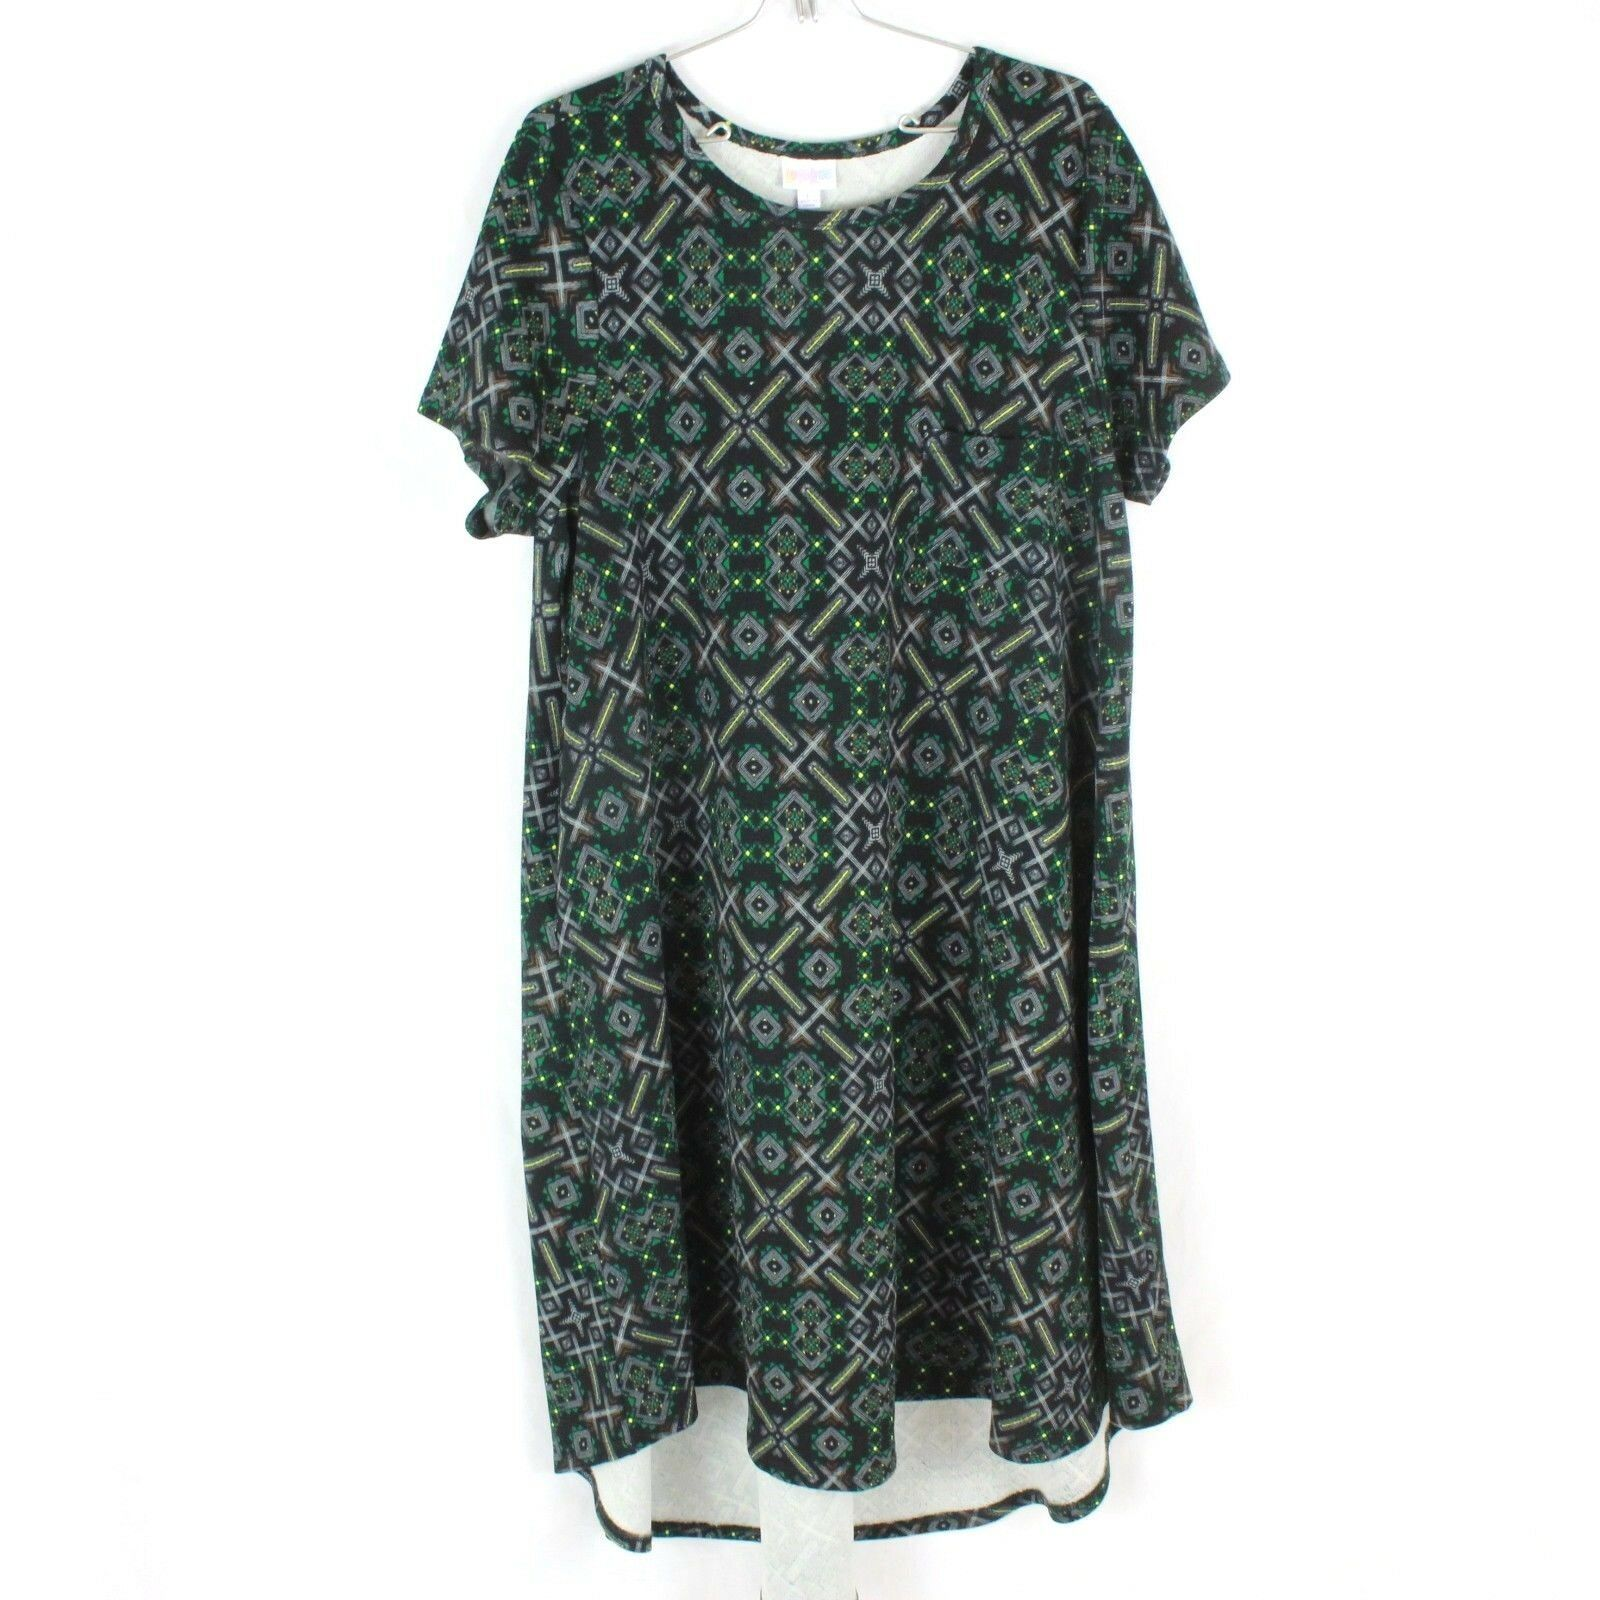 Primary image for LuLaroe T-Shirt Dress Size Large Simply Comfortable Womens OverSized Flowy Fit